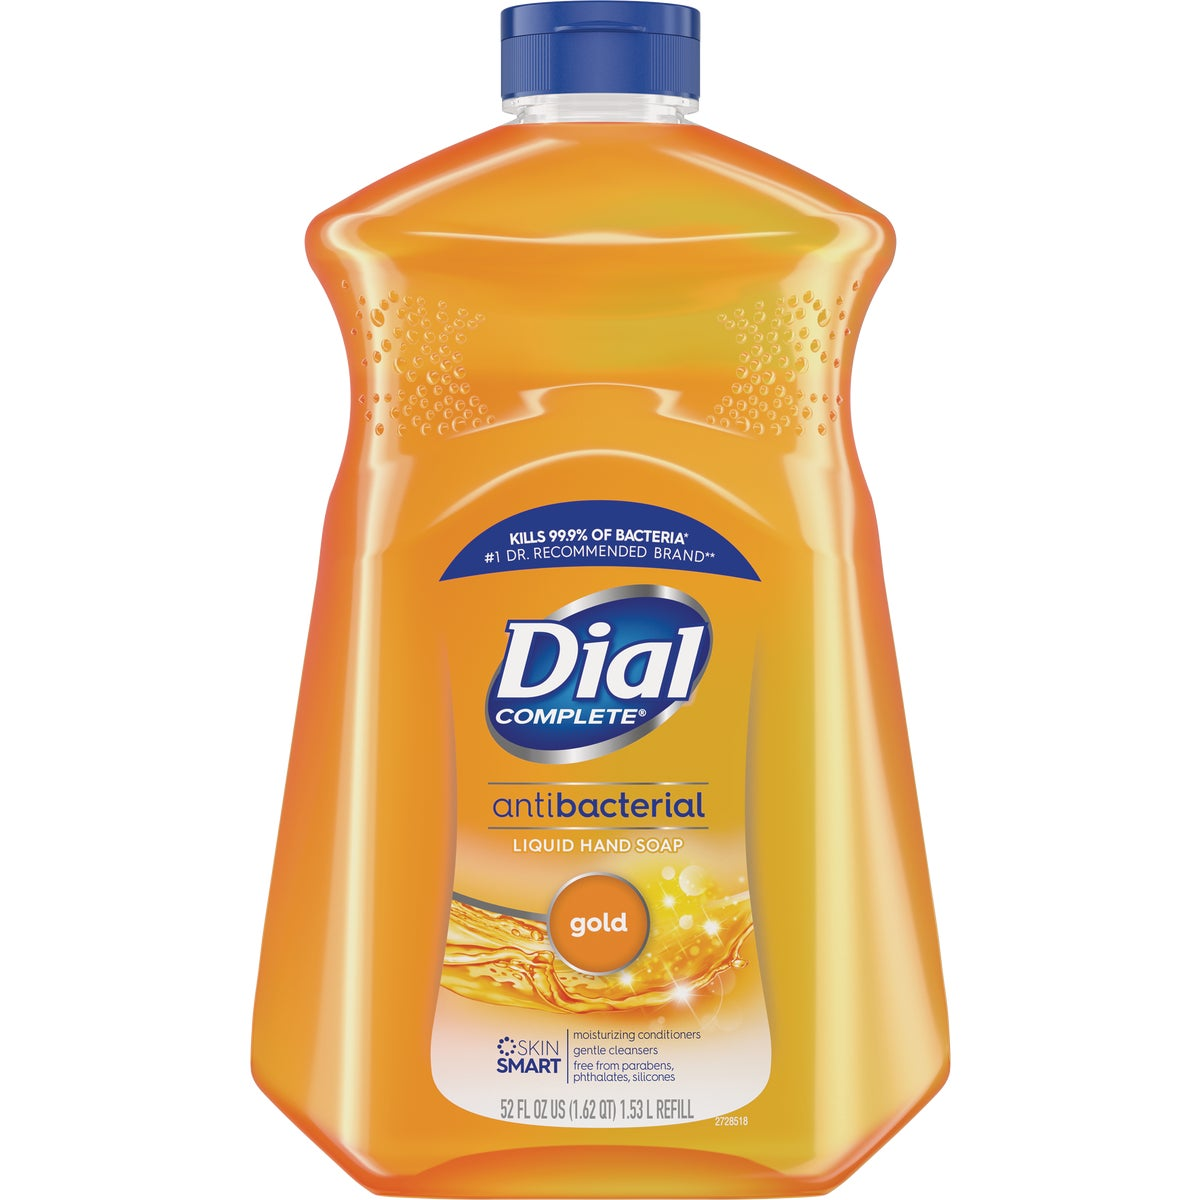 DIAL GOLD 32OZ REFILL - 17000-09212 by Dial Corp